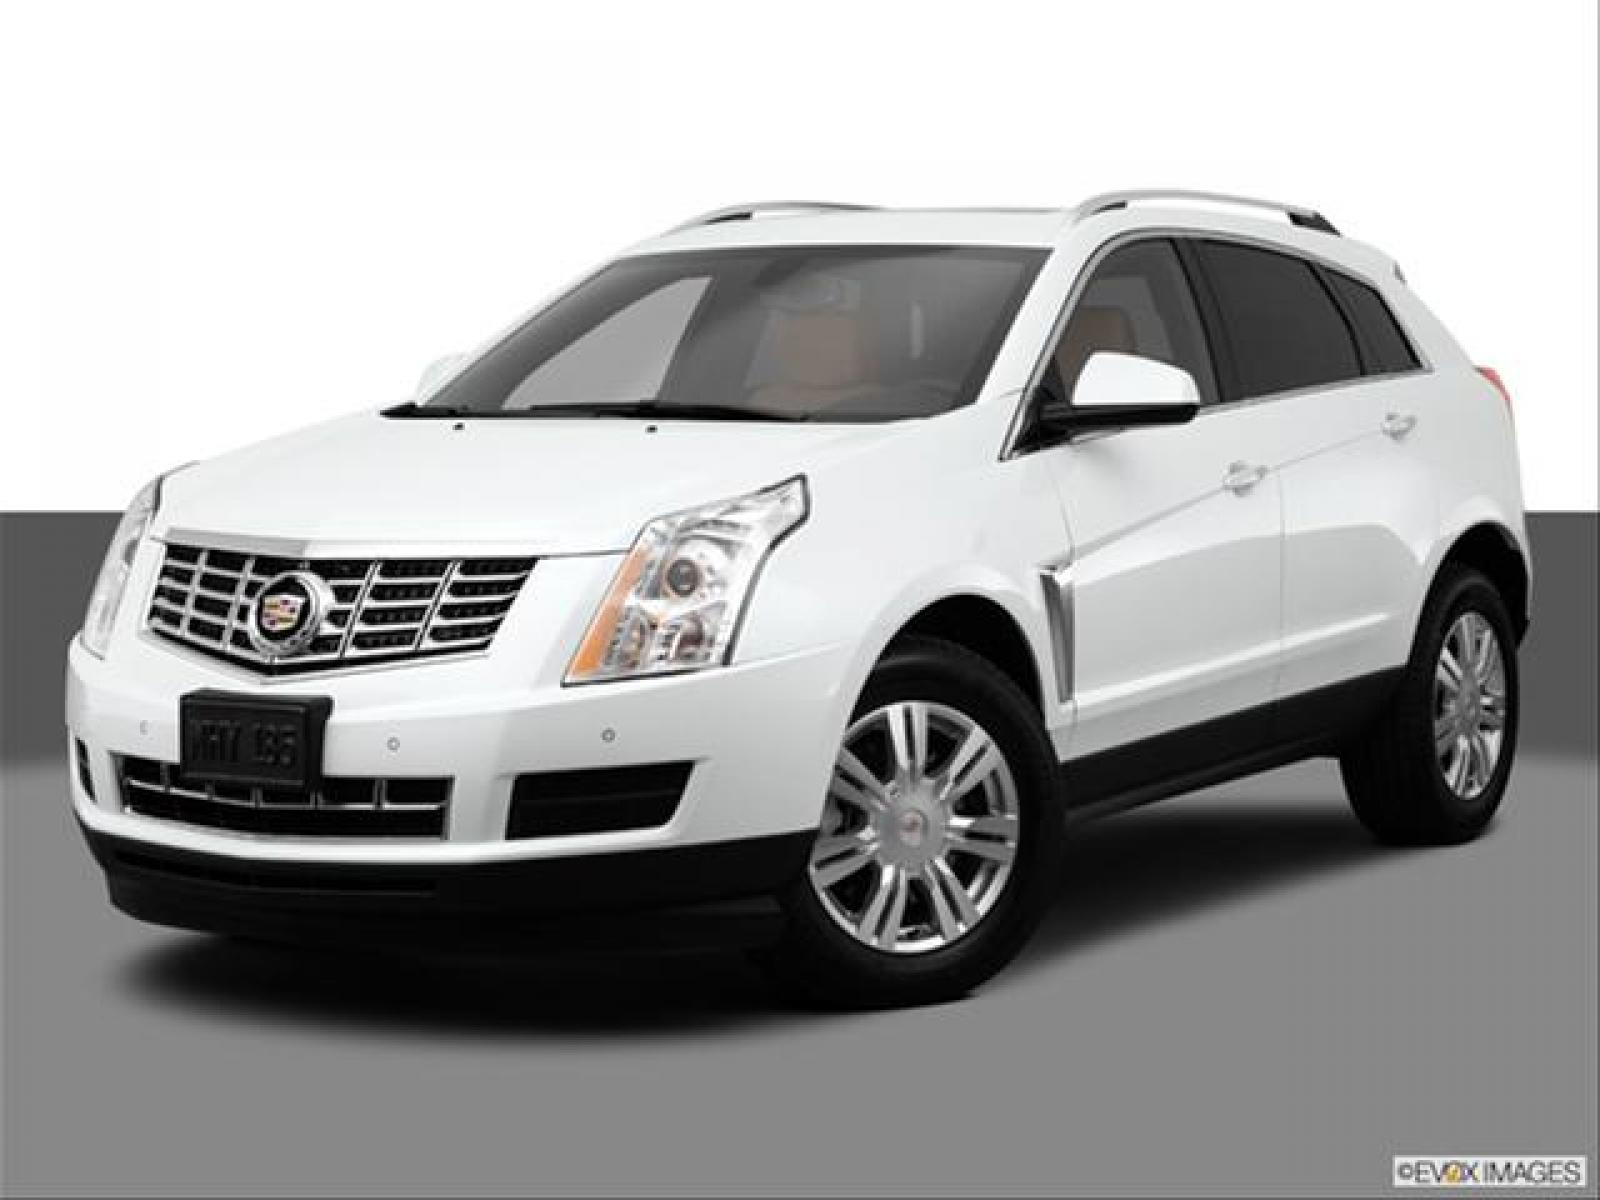 coast cleveland cadillac luxury collection in revo srx auto mall ohio north city of